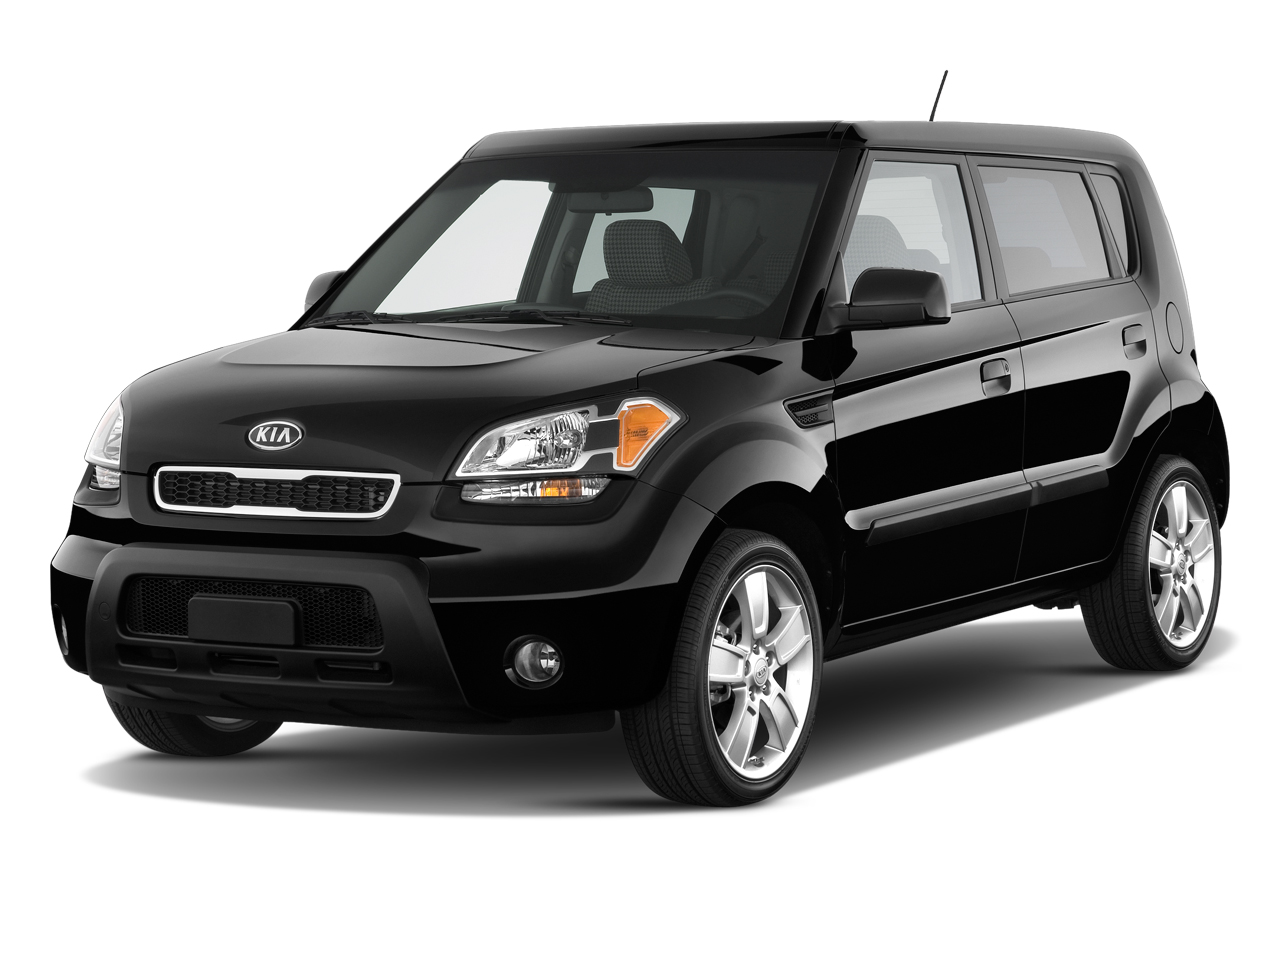 Kia Soul 12 Widescreen Wallpaper